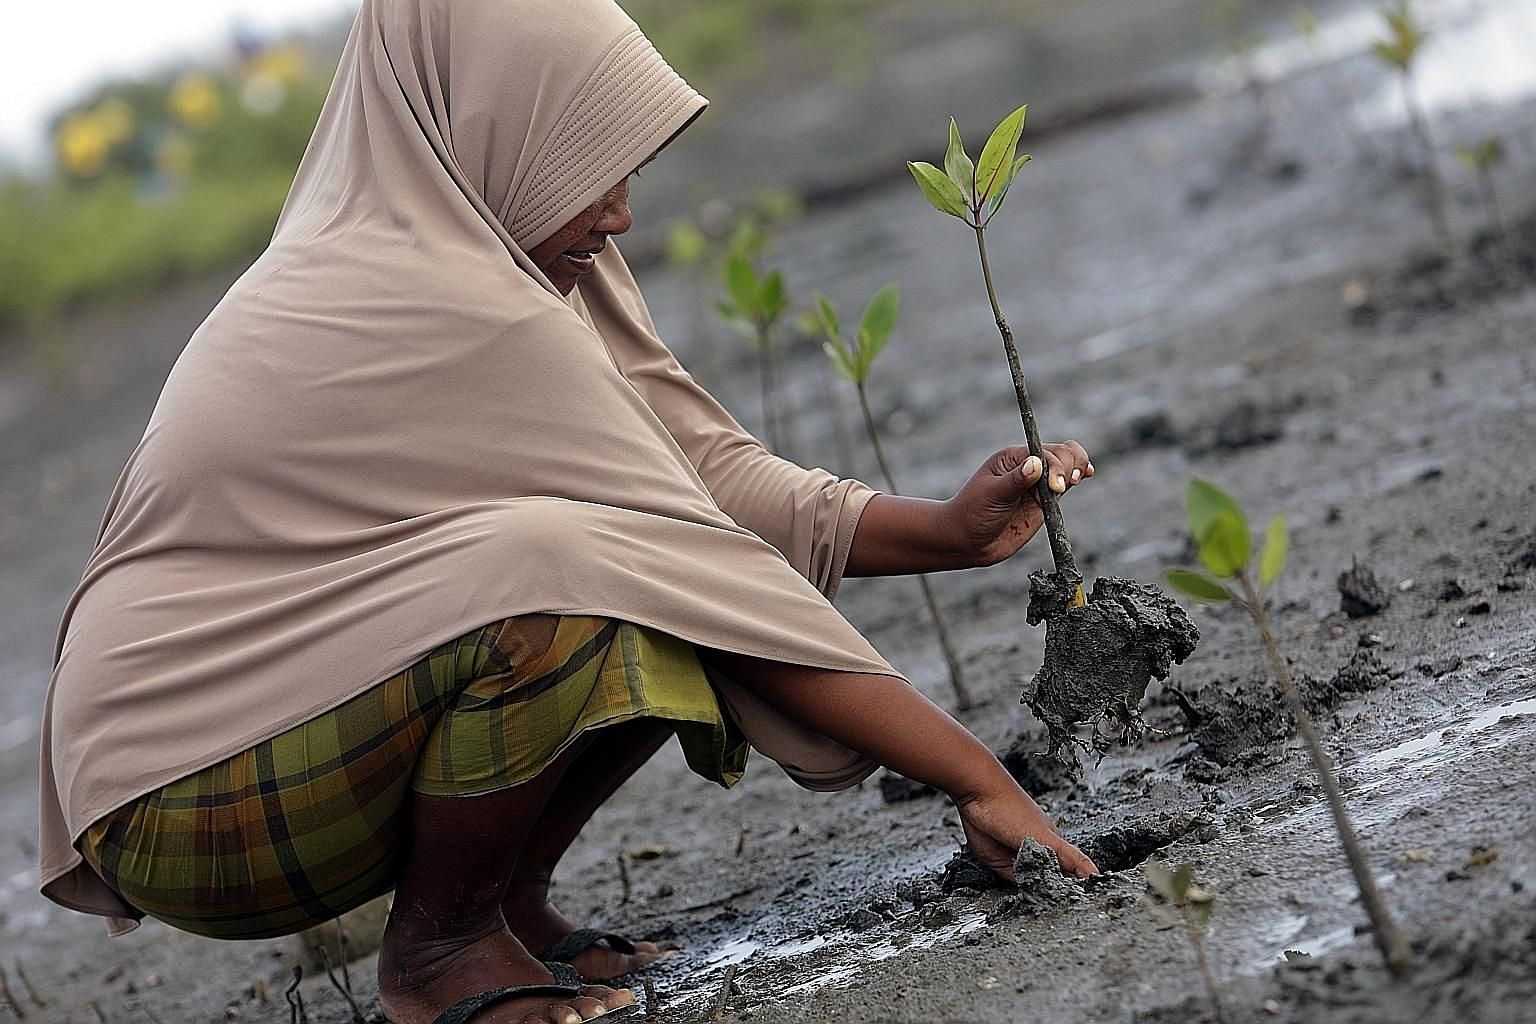 Mangroves being planted last week in the mudflats of the Alue Naga coastal area in Banda Aceh in Indonesia's Aceh province. The trees' capacity to absorb and store carbon represents a huge opportunity for countries like Indonesia and Papua New Guinea